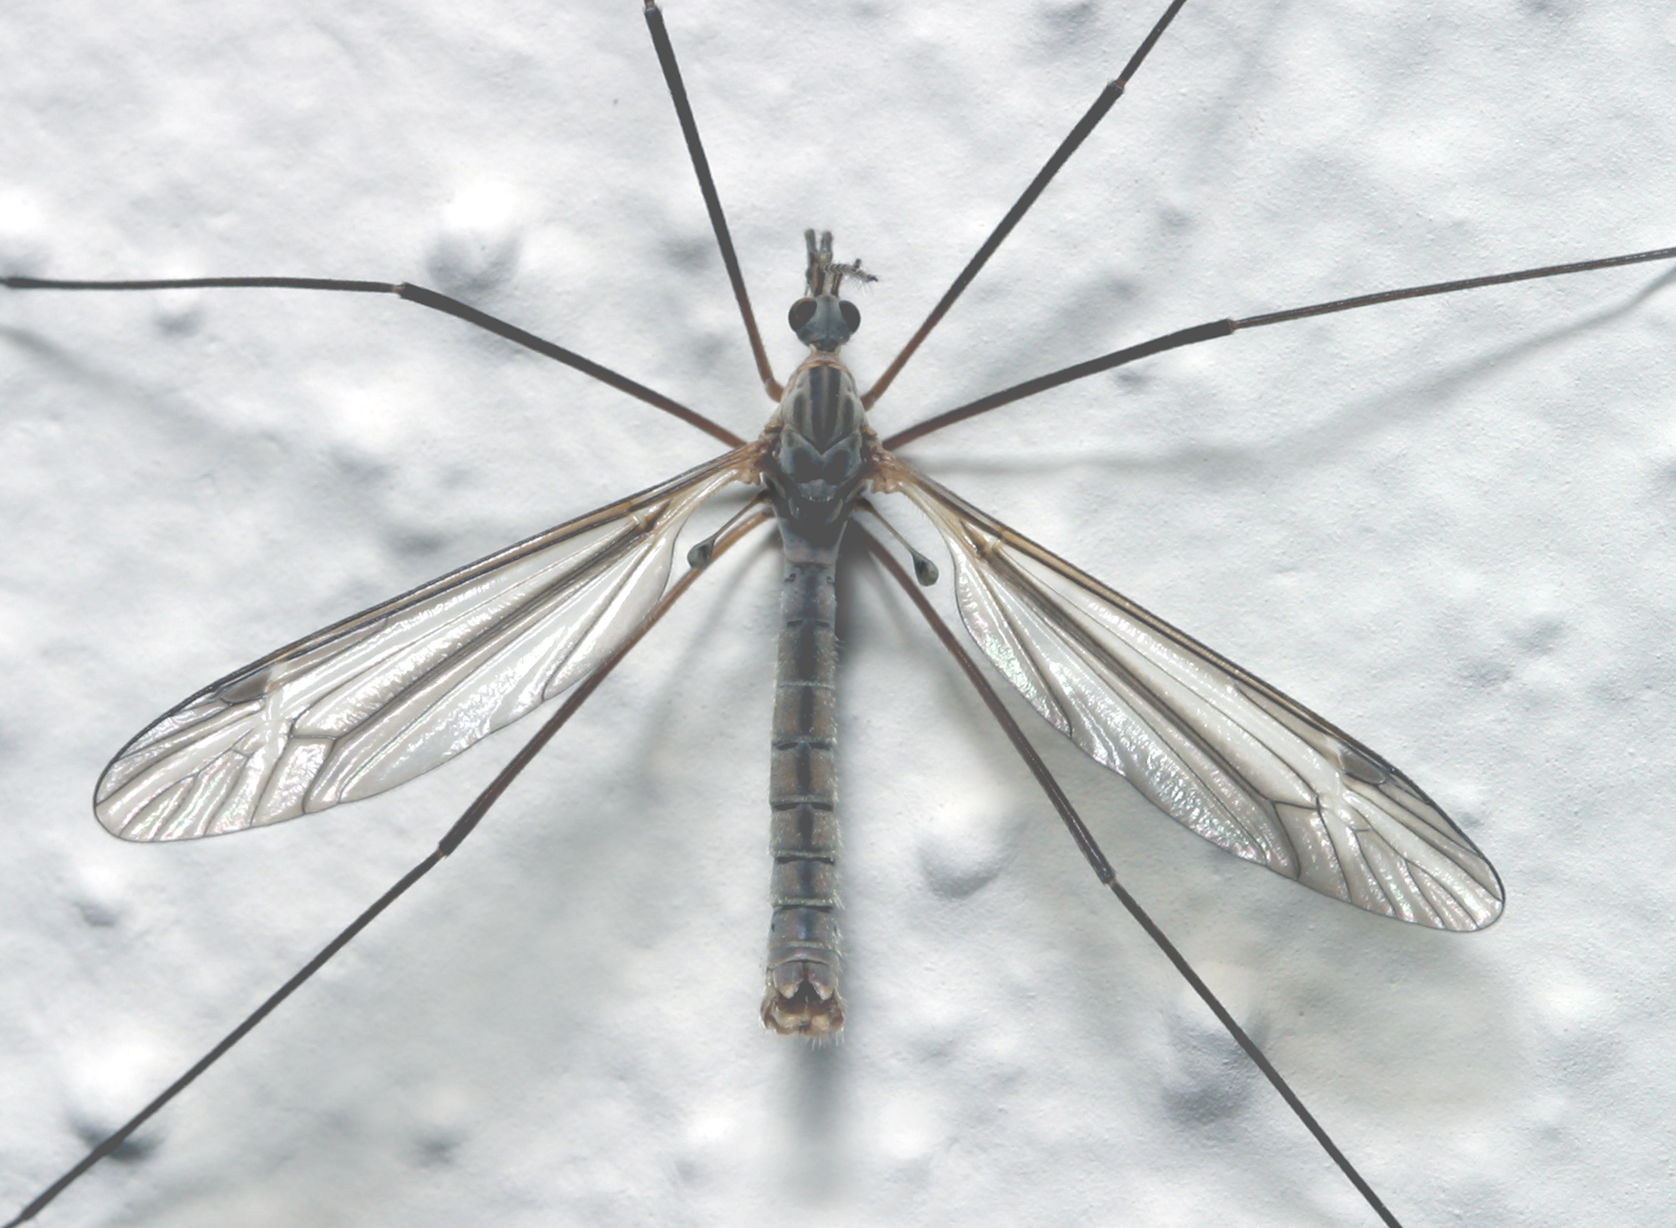 The Long Legged Crane Flies Are One Of The Early Insect Harbingers Of Spring